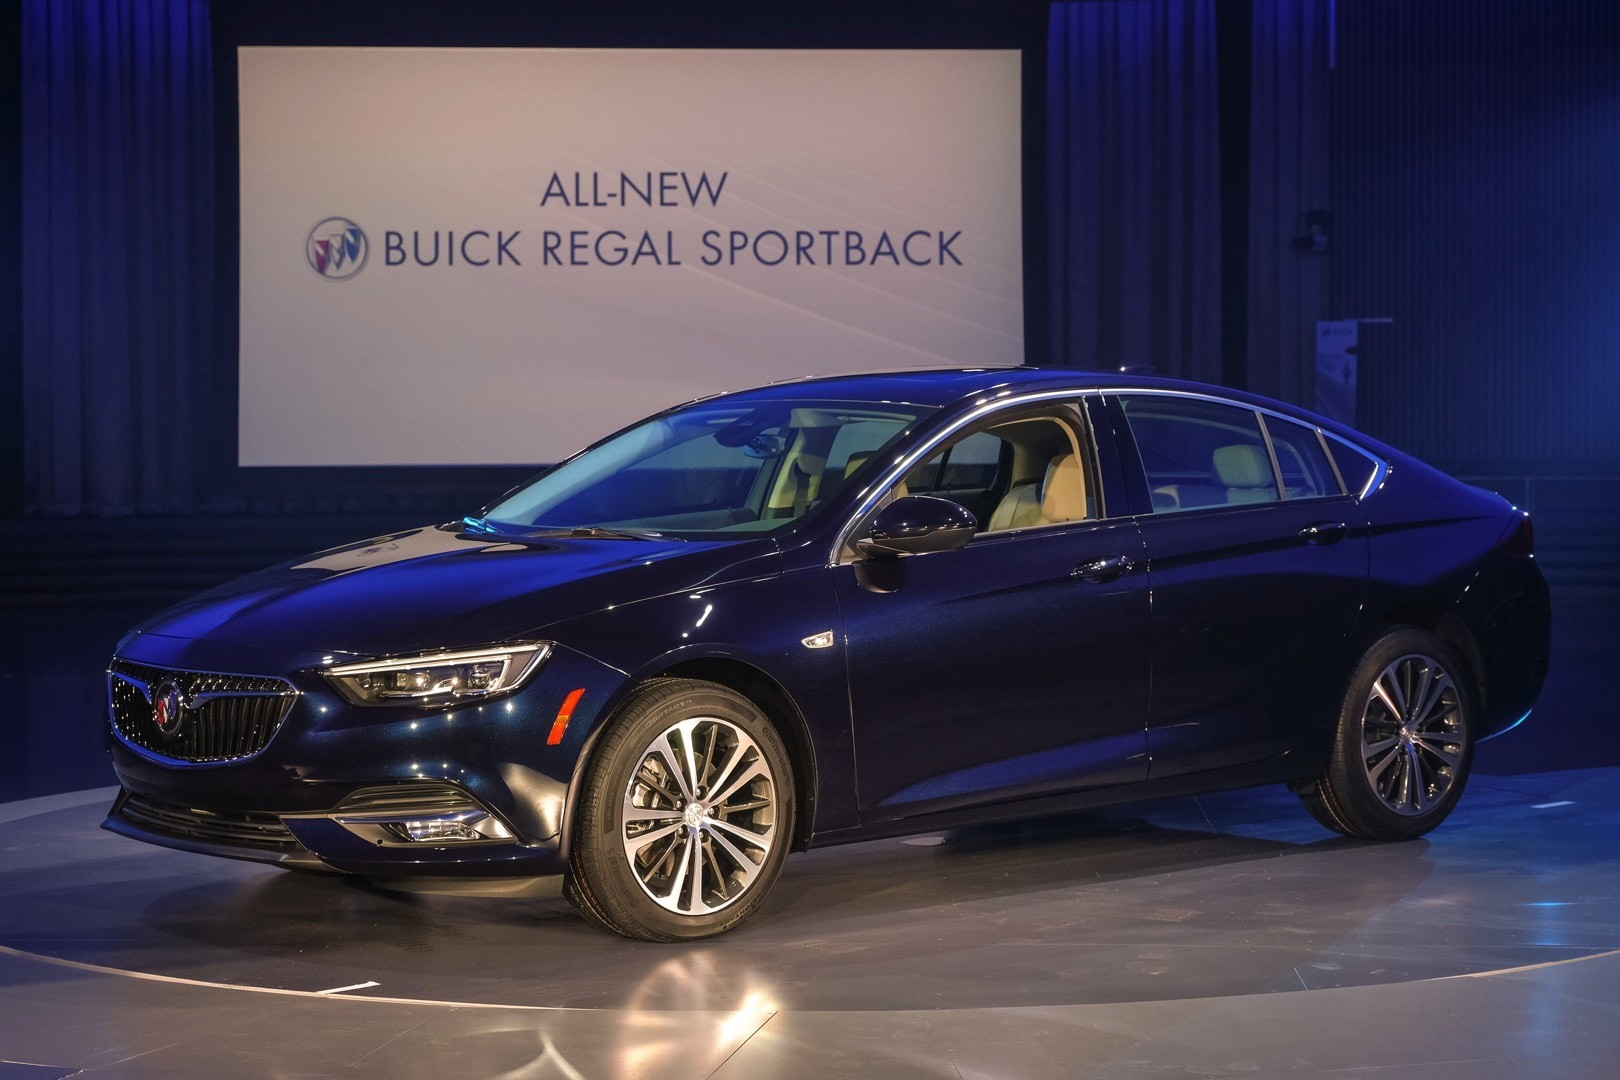 2018 Buick Regal Gs Leak Suggests V6 Power And Awd